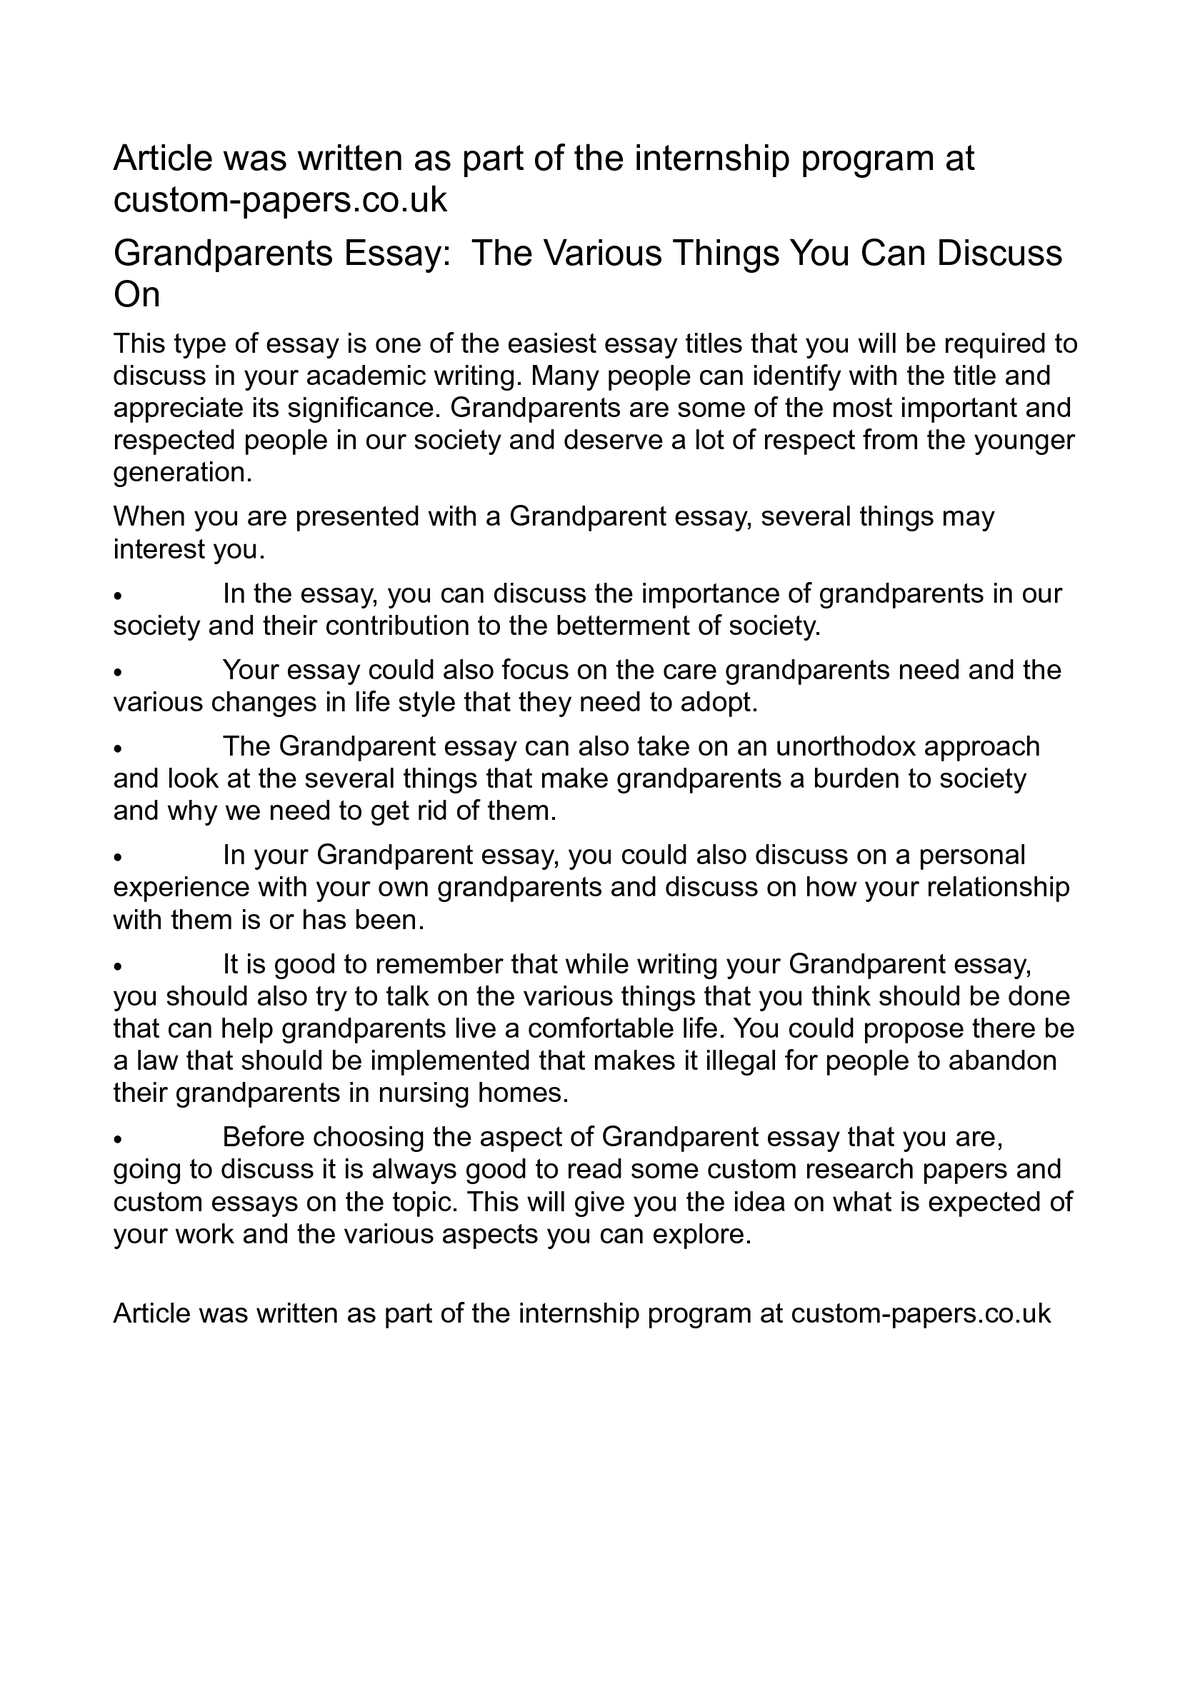 Calam o grandparents essay the various things you can discuss on